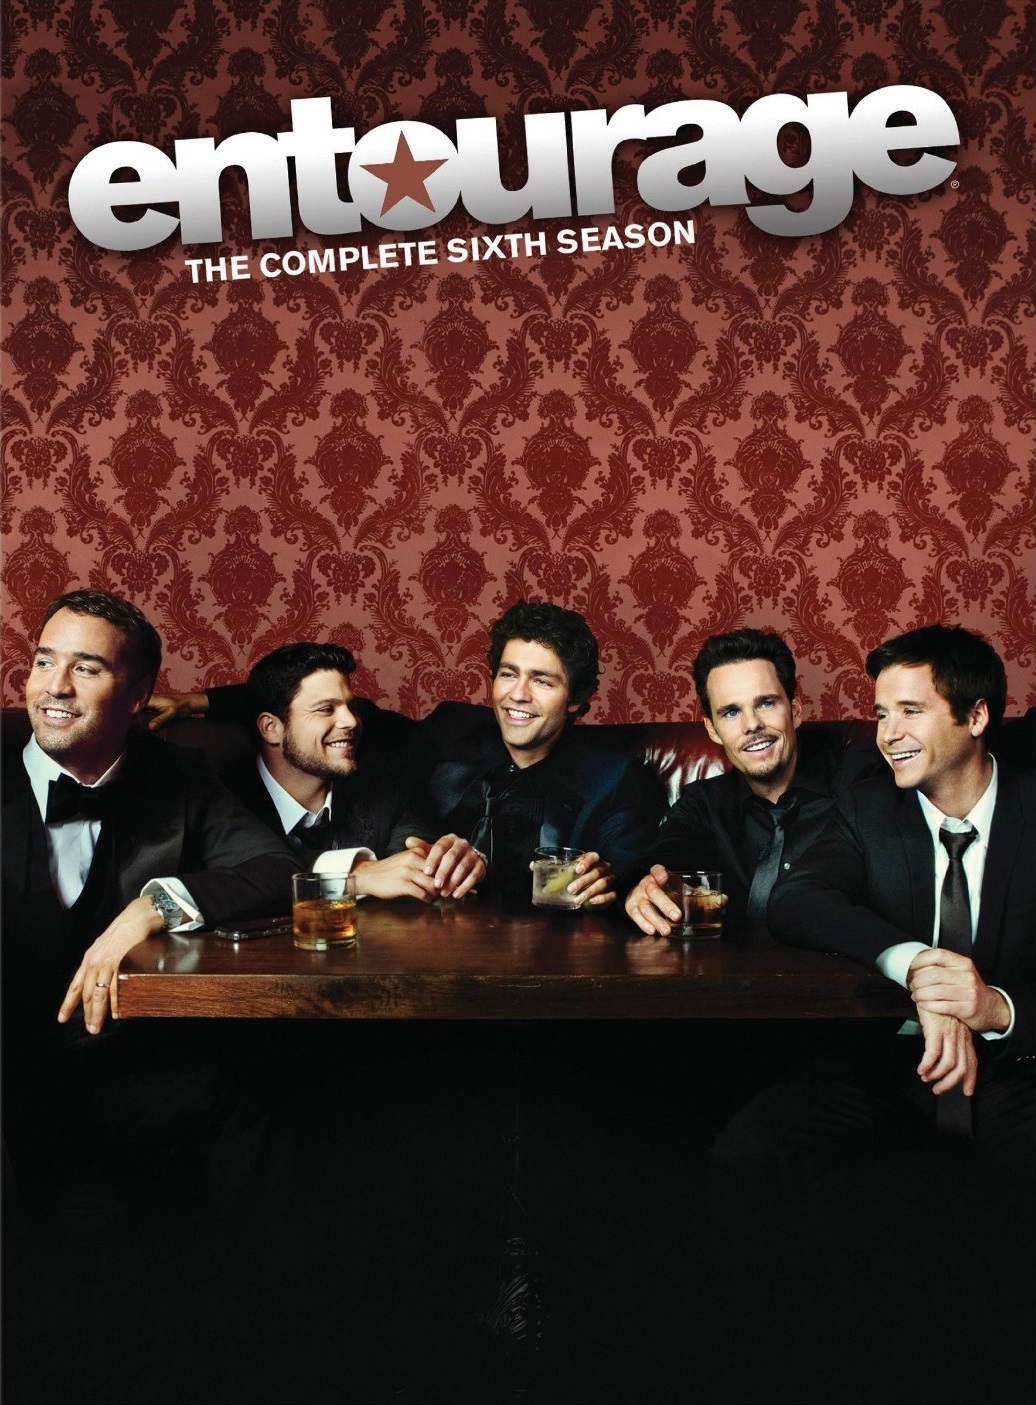 Entourage Season 6 Complete Episodes Download In Hd 720p